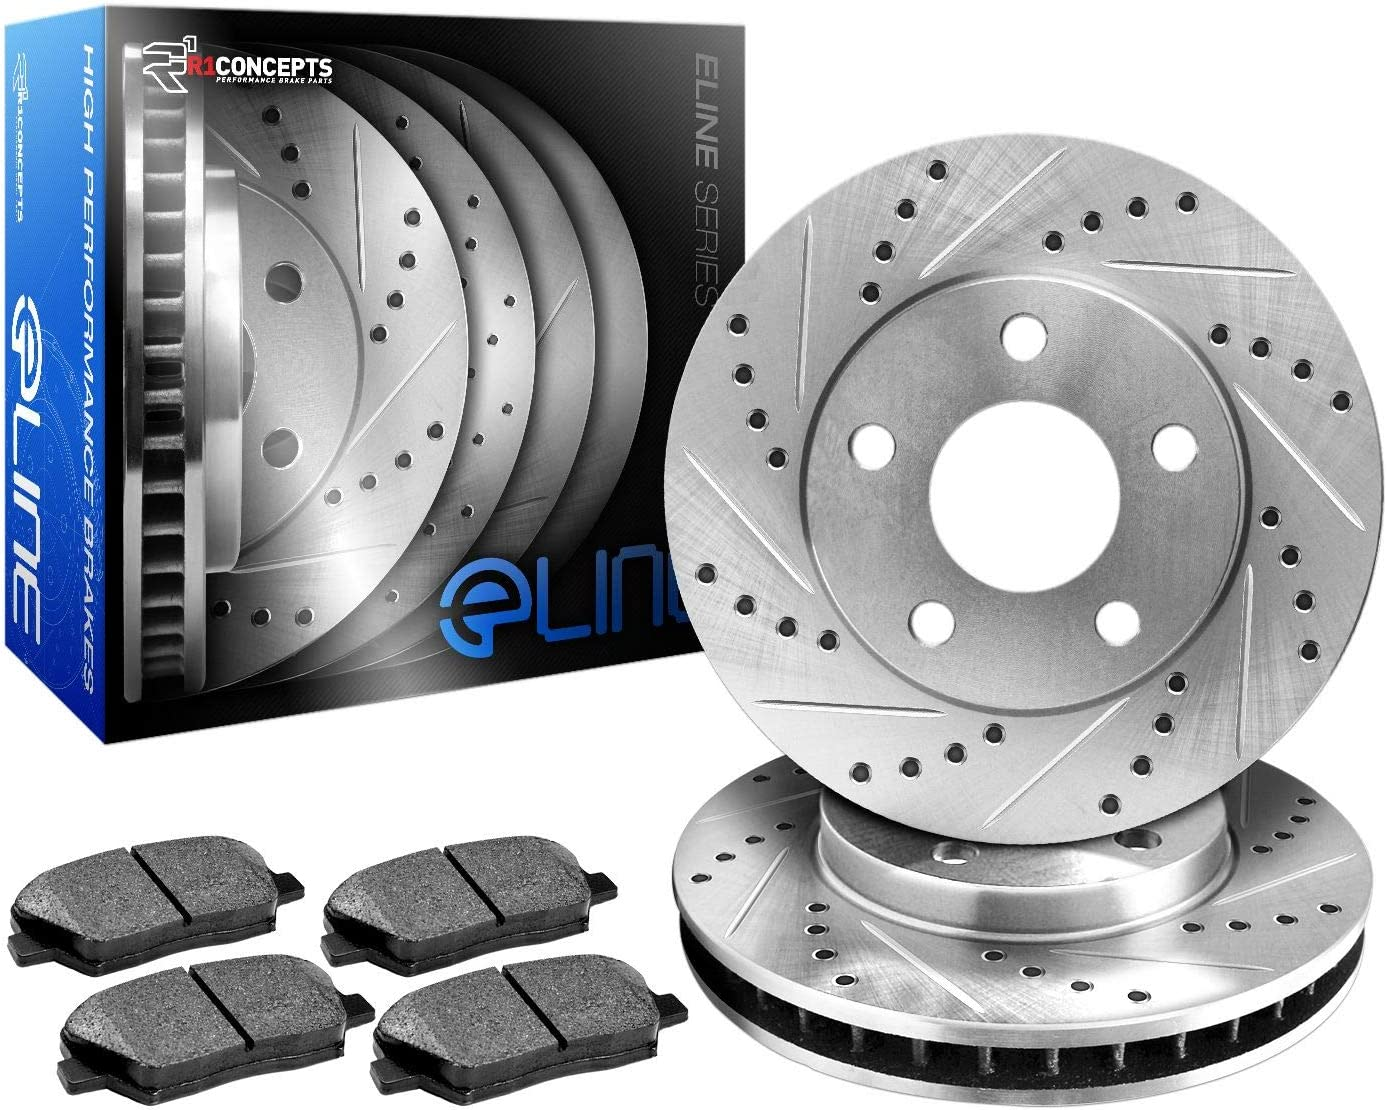 R1 Concepts KEDS11426 Eline Cross-Drilled Gifts Slotted Popular standard Series Rotors